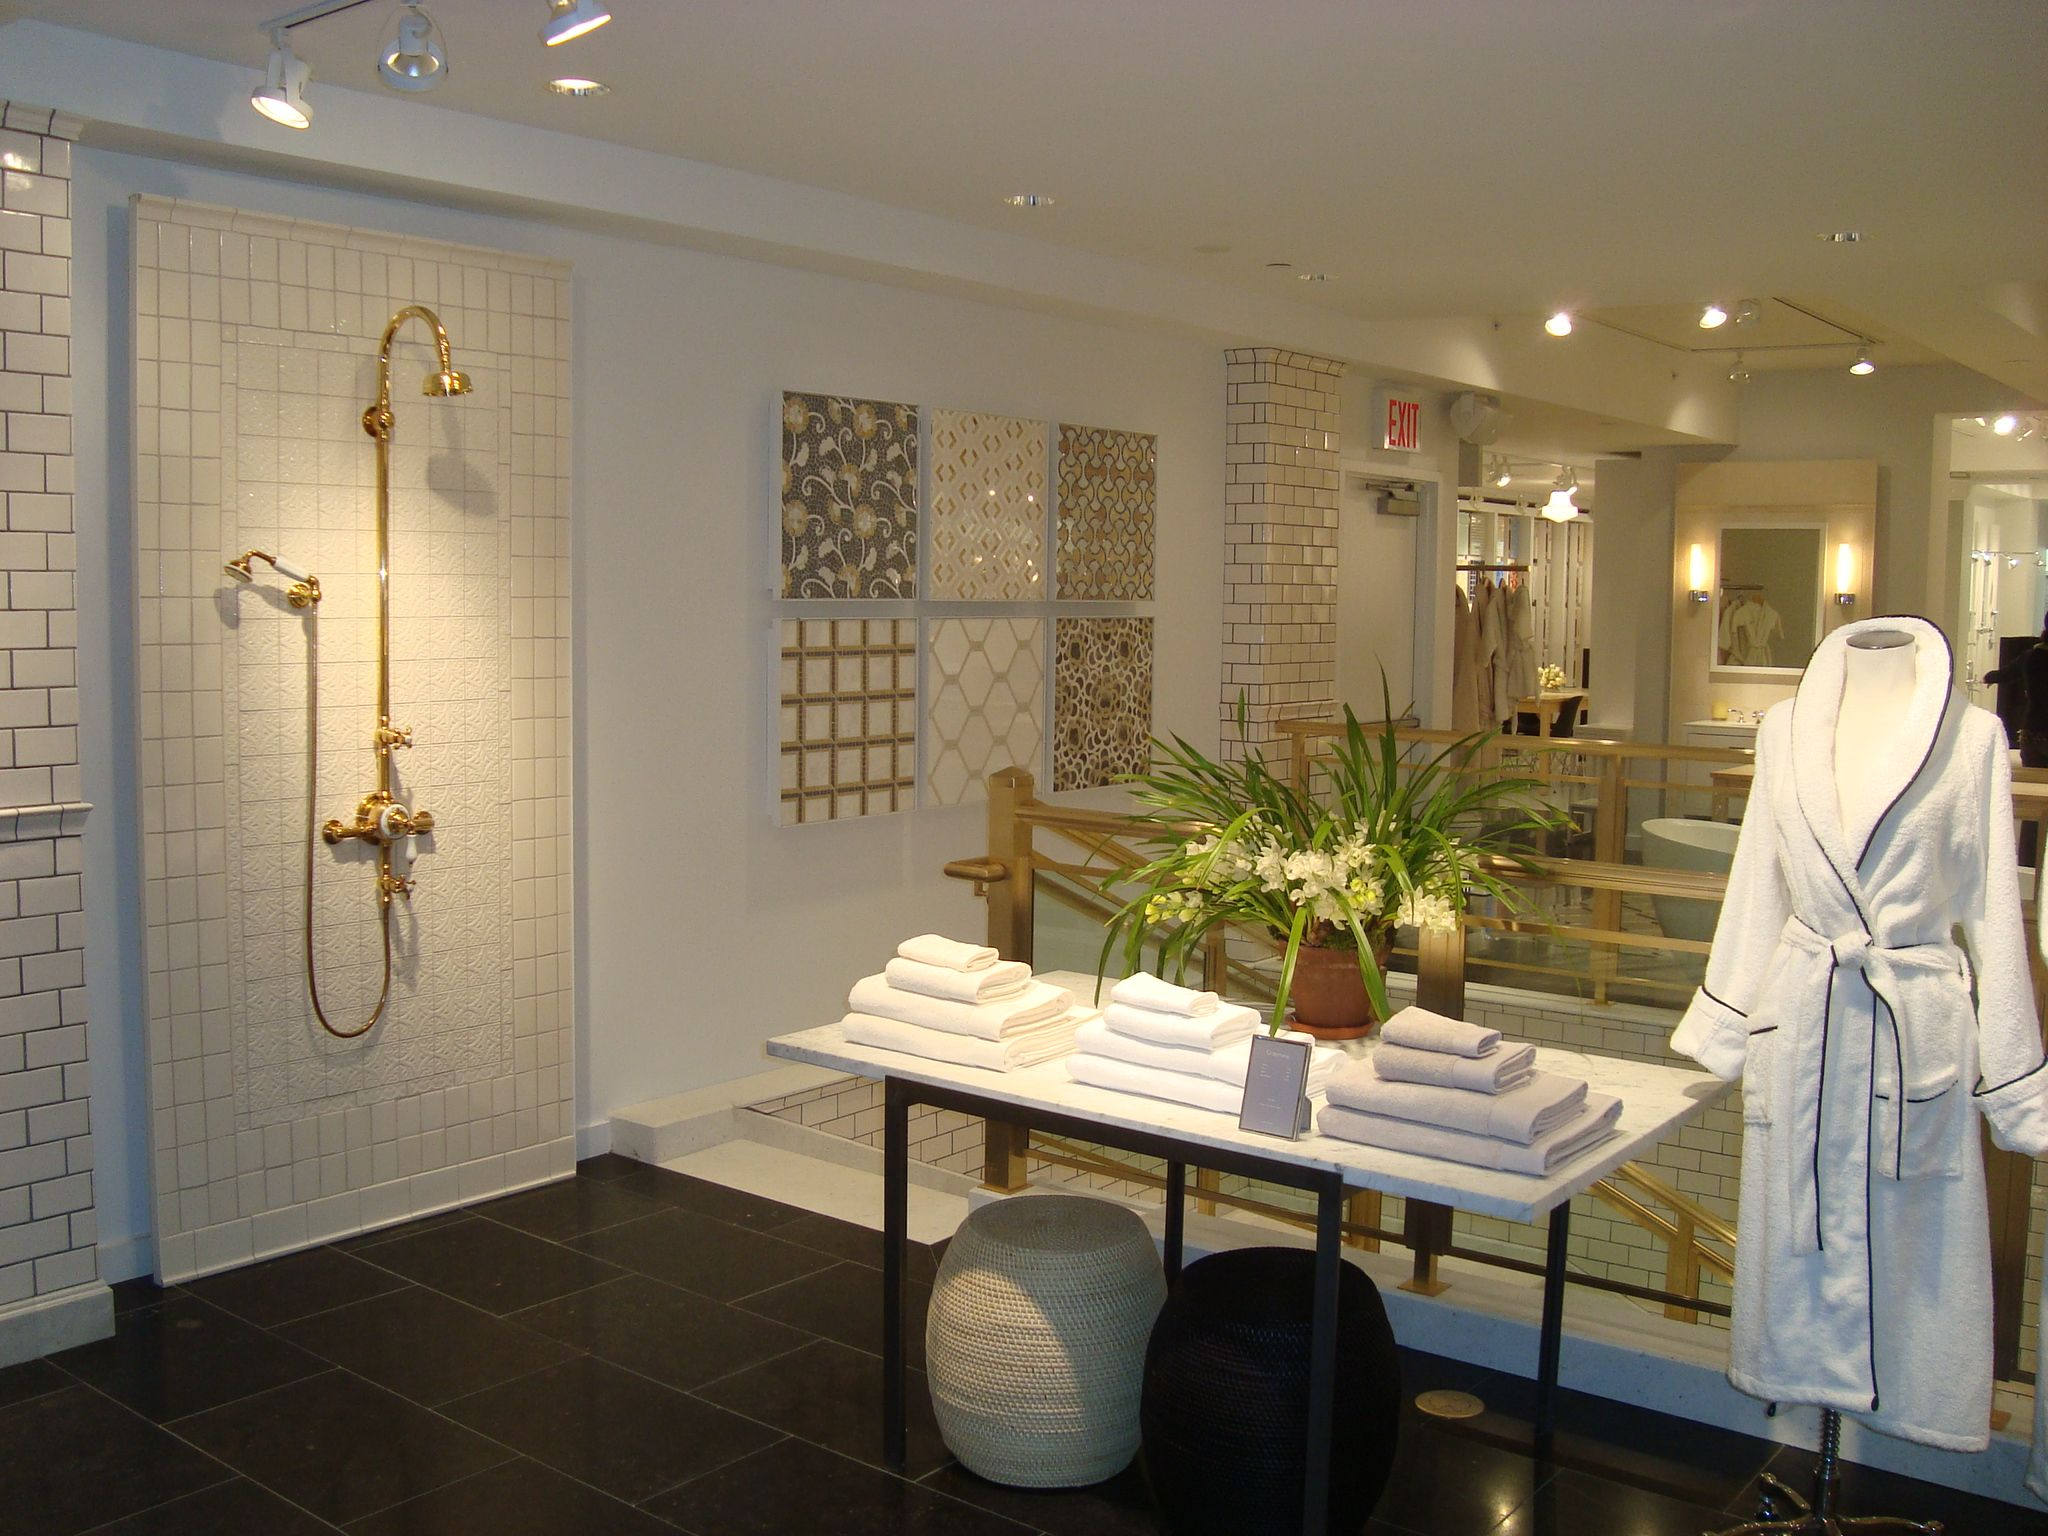 Best New York 58th Street Showroom Images